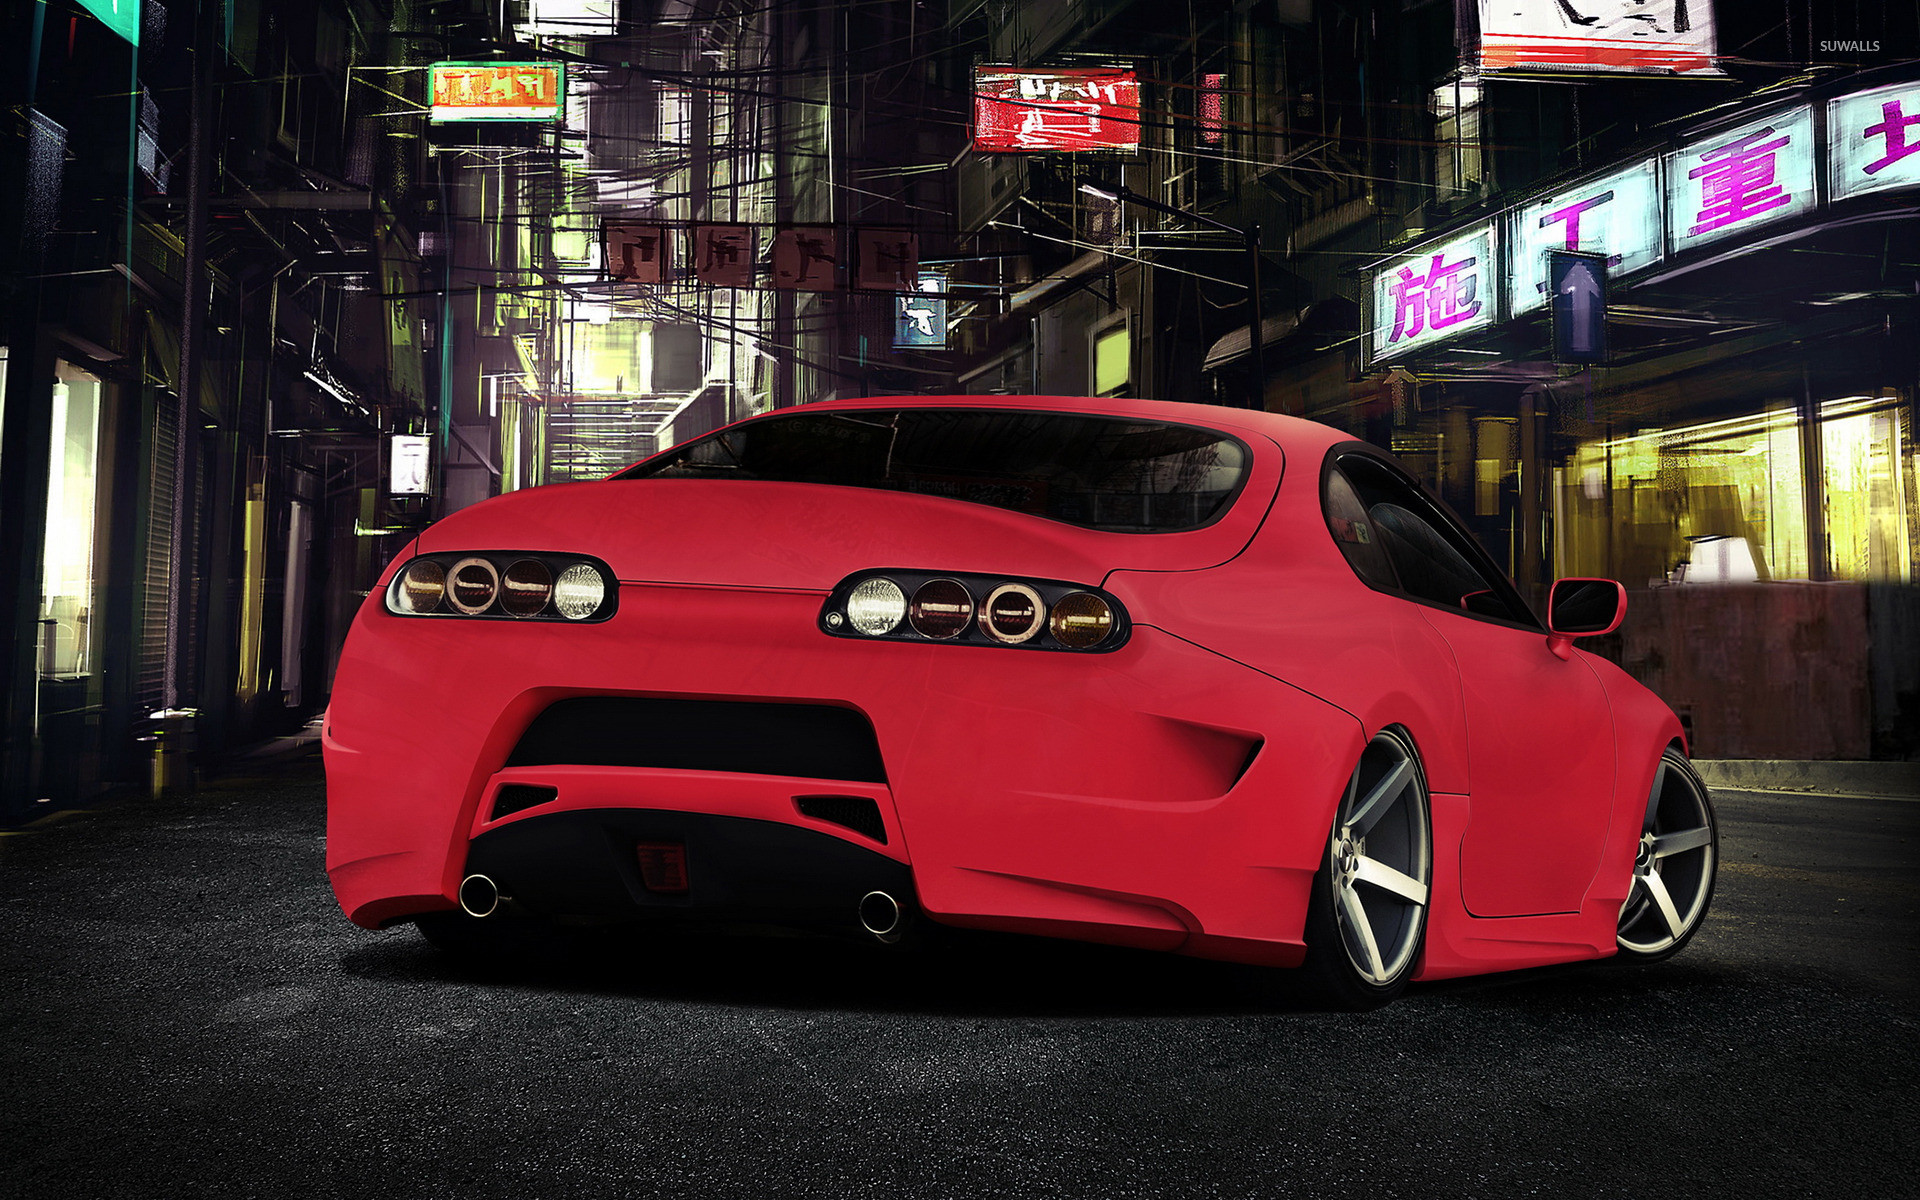 Wallpaper Toyota Supra Sports Car Need For Speed: Toyota Supra Wallpapers 1920X1080 (72+ Background Pictures